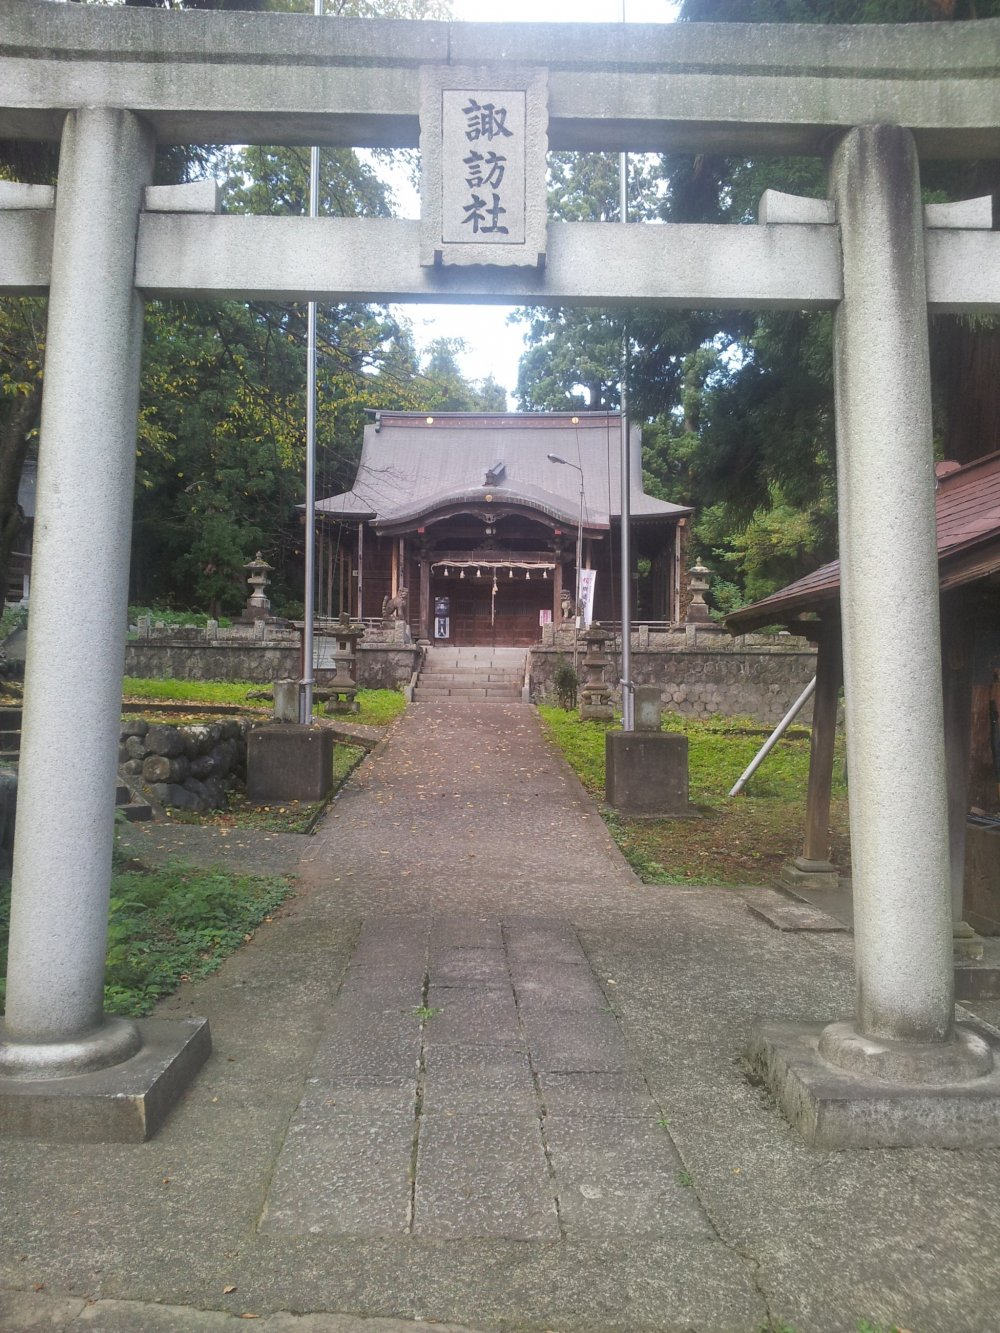 The path to the main shrine